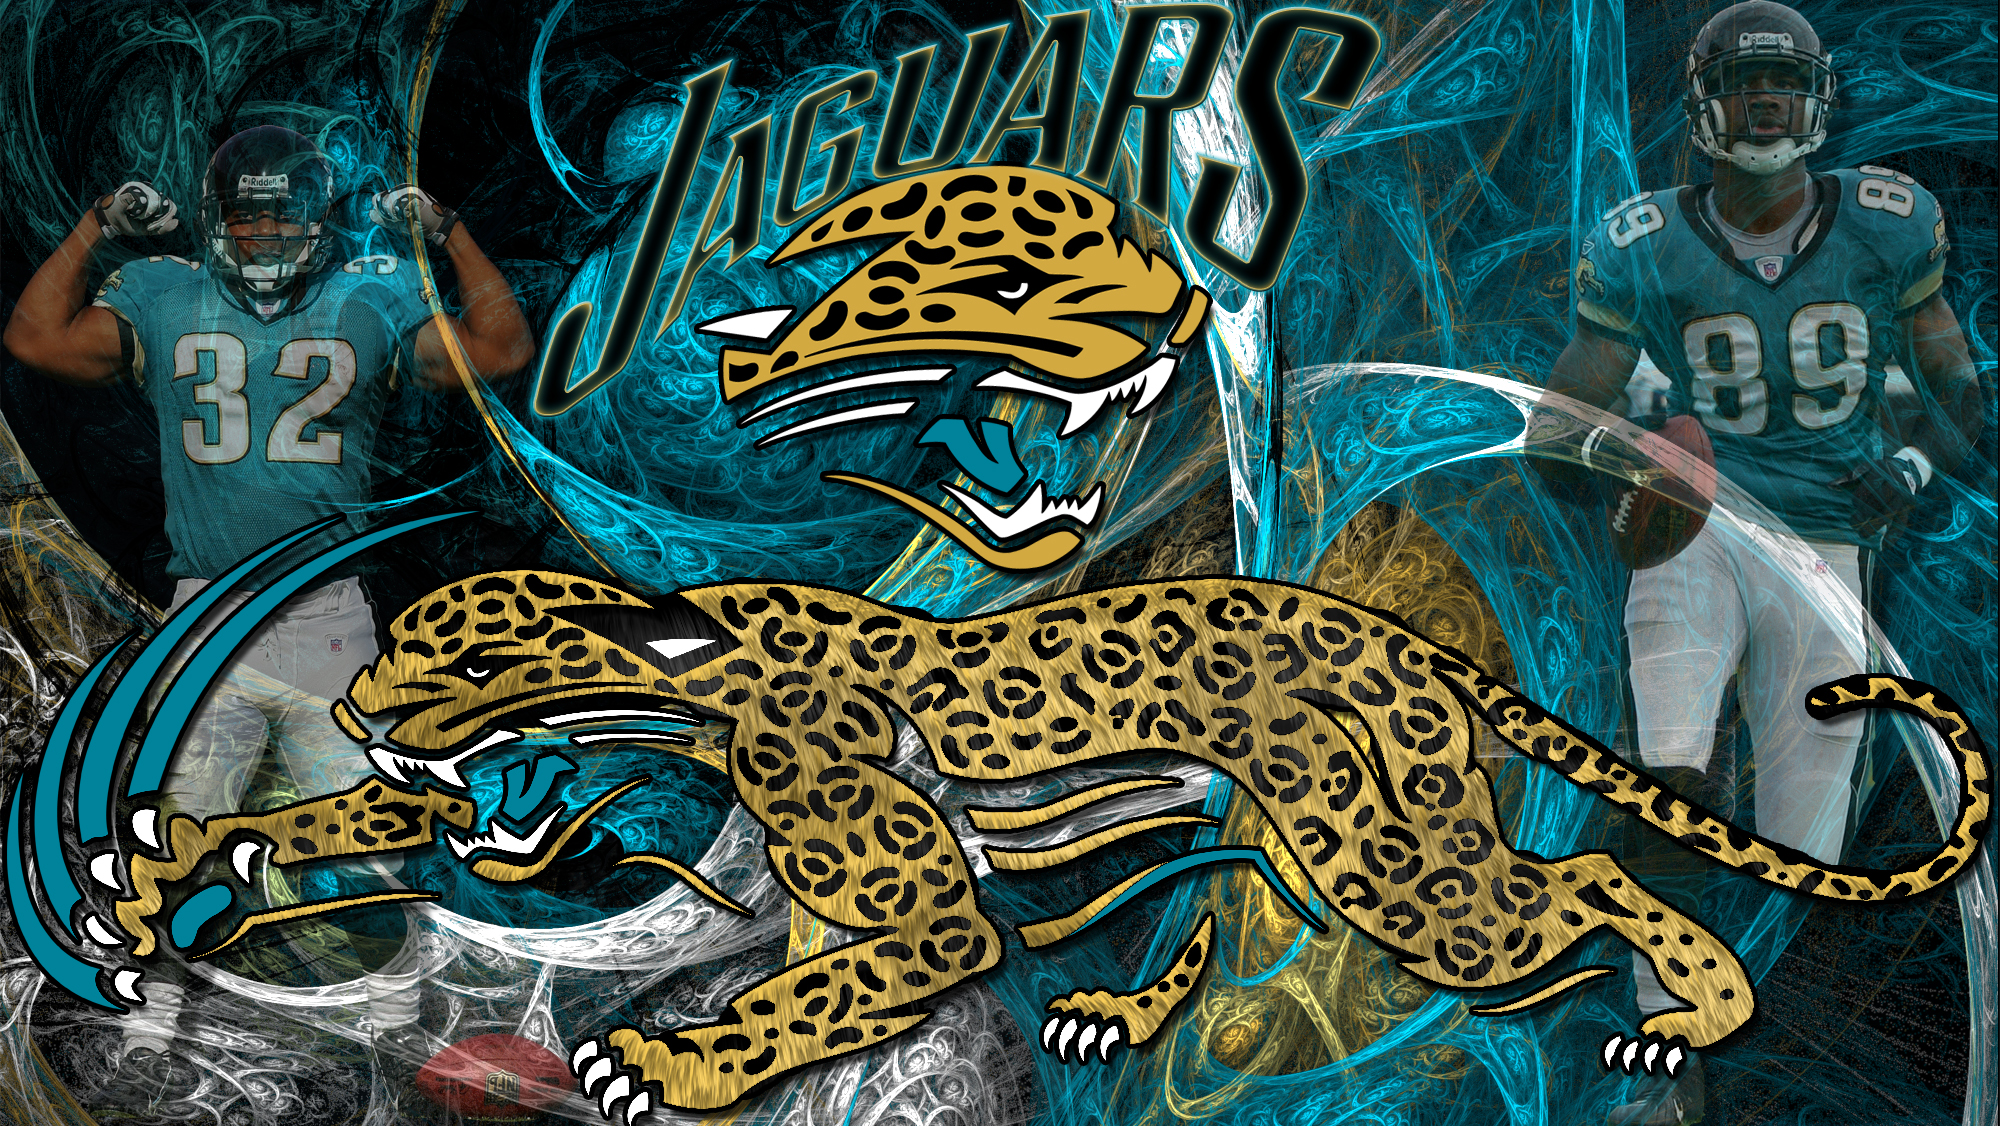 JACKSONVILLE JAGUARS nfl football h wallpaper 2000x1126 157817 2000x1126